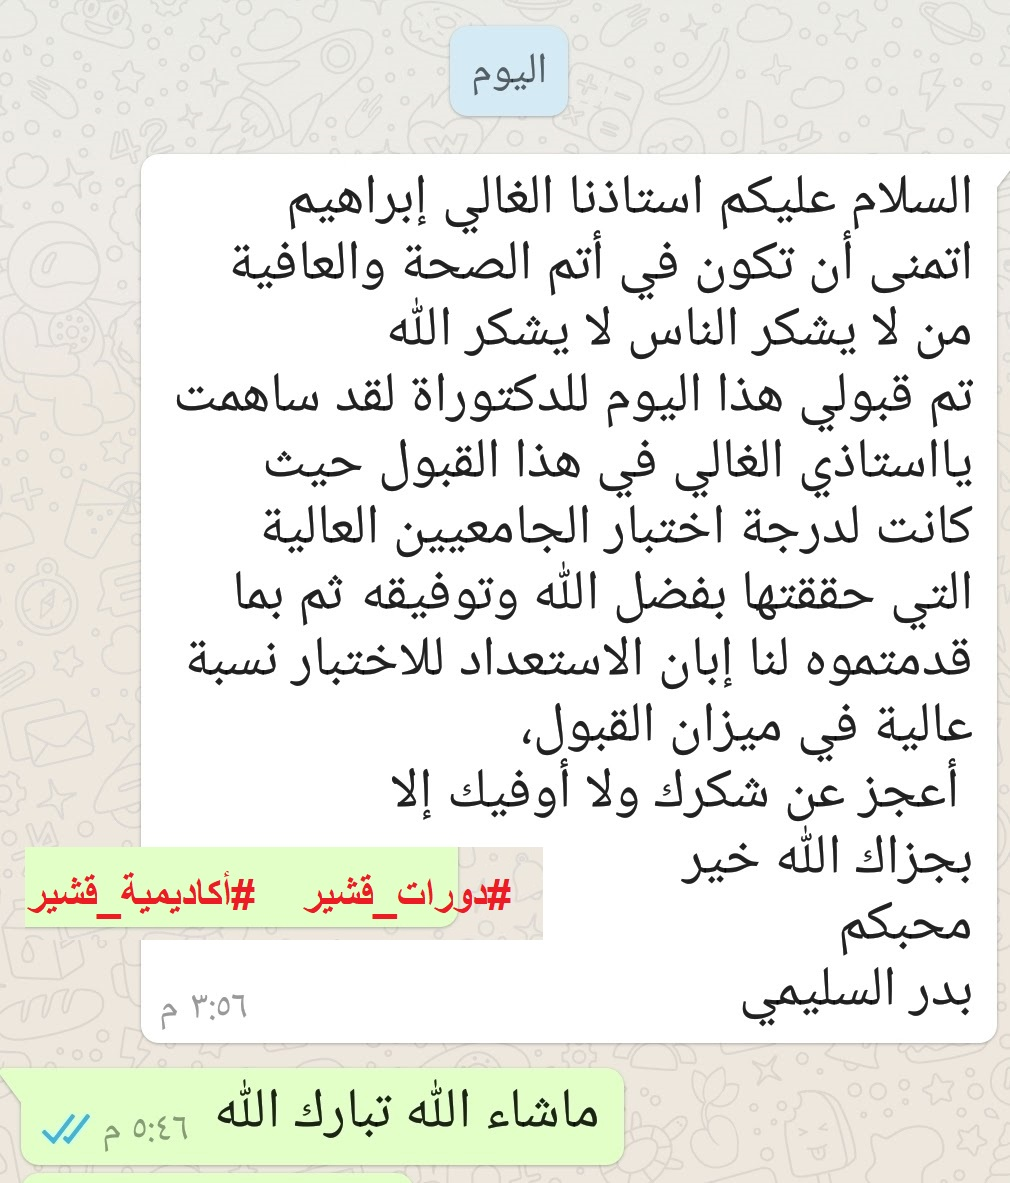 Screenshot_٢٠٢٠٠٧٠٣-١٨٠٤٤٢_WhatsApp